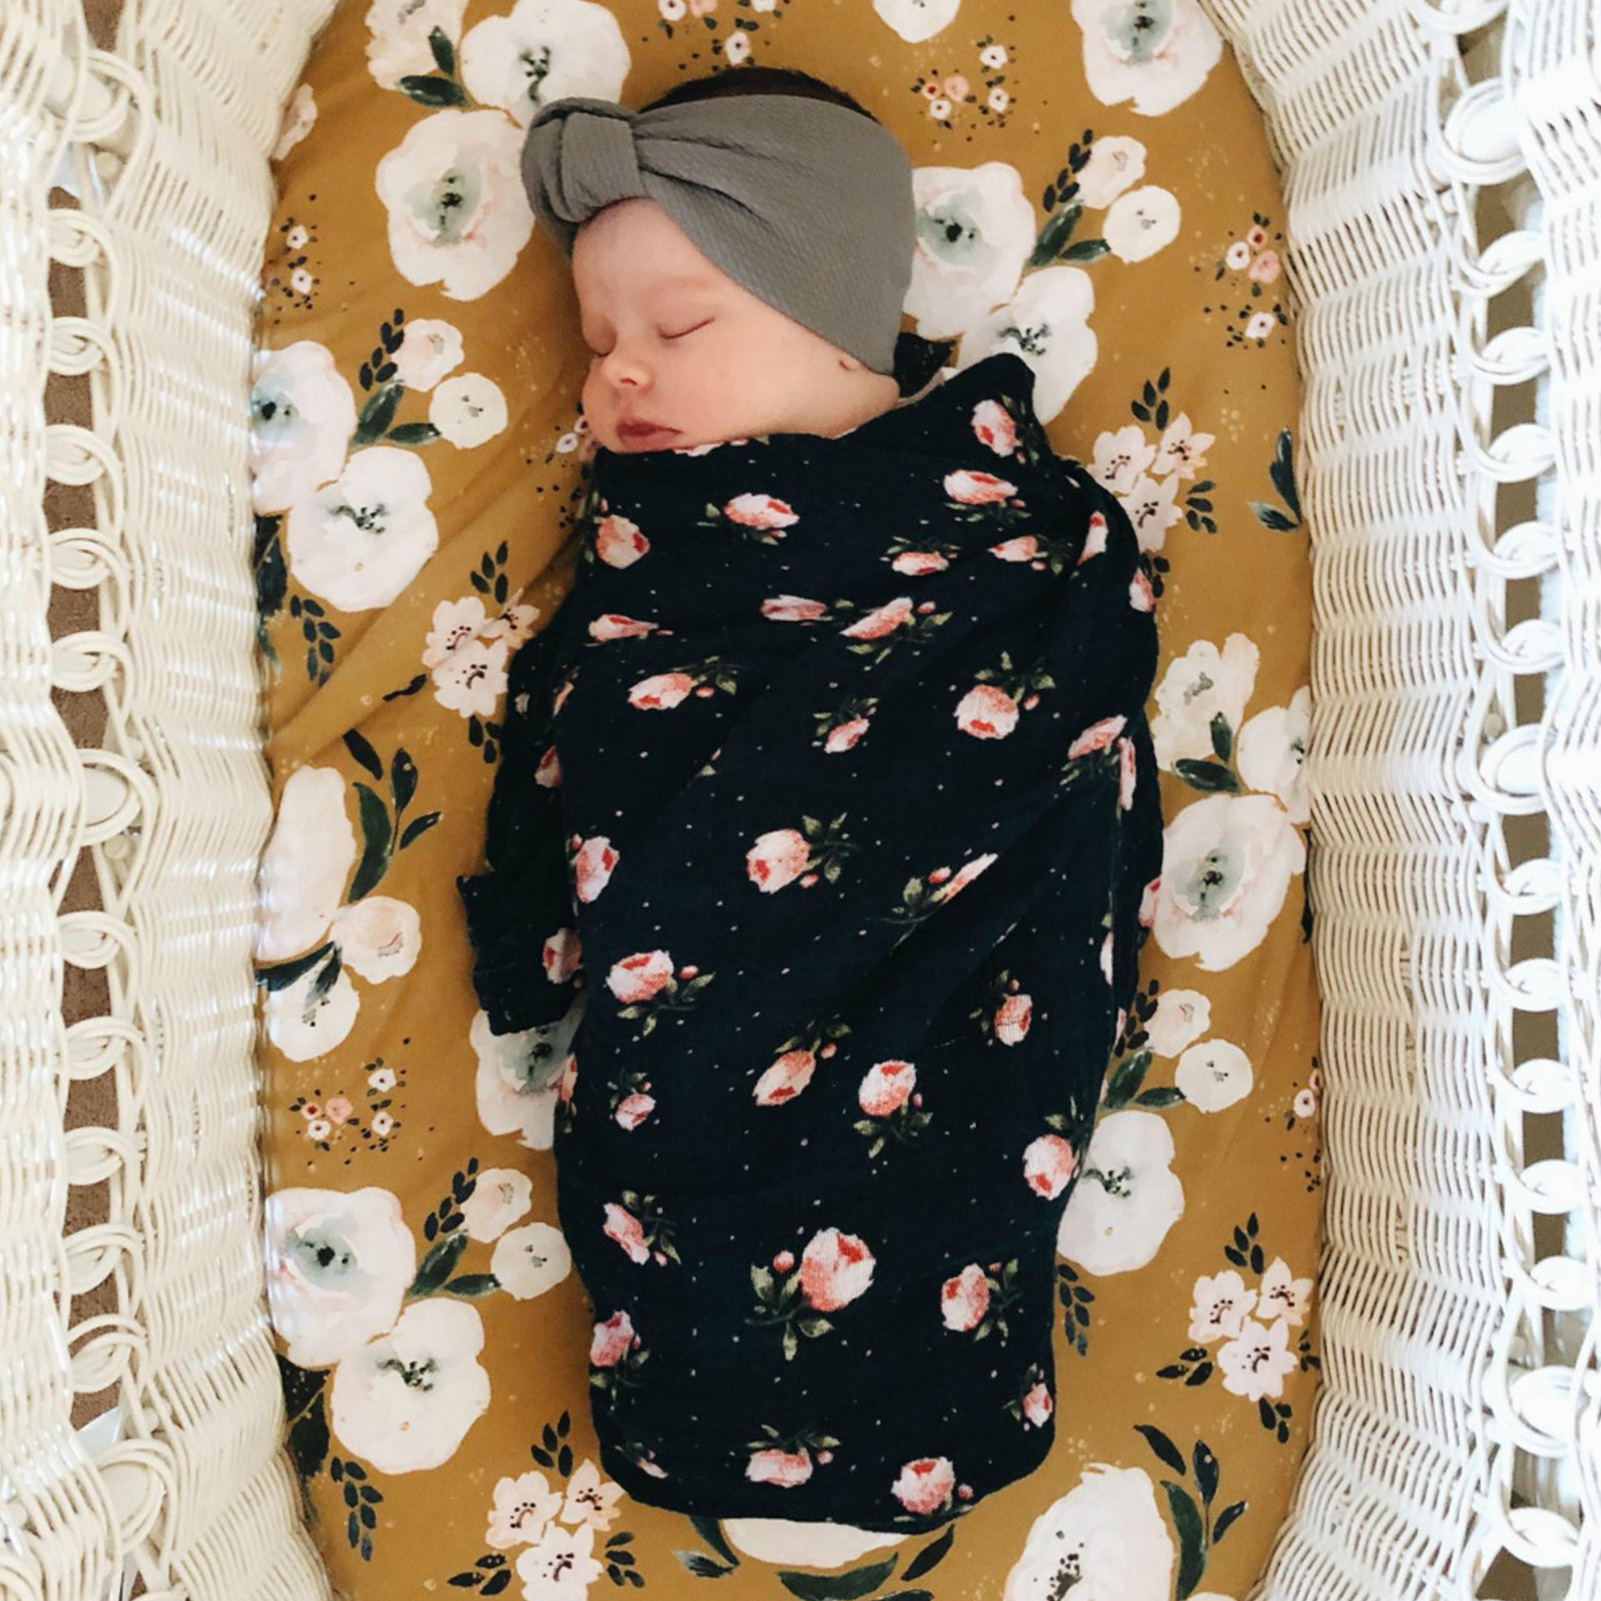 Soft 100% Cotton Fitted Cotton Crib Sheet With Removable Cover Featured By High Elastic Elastic Band Design For Various Cribs